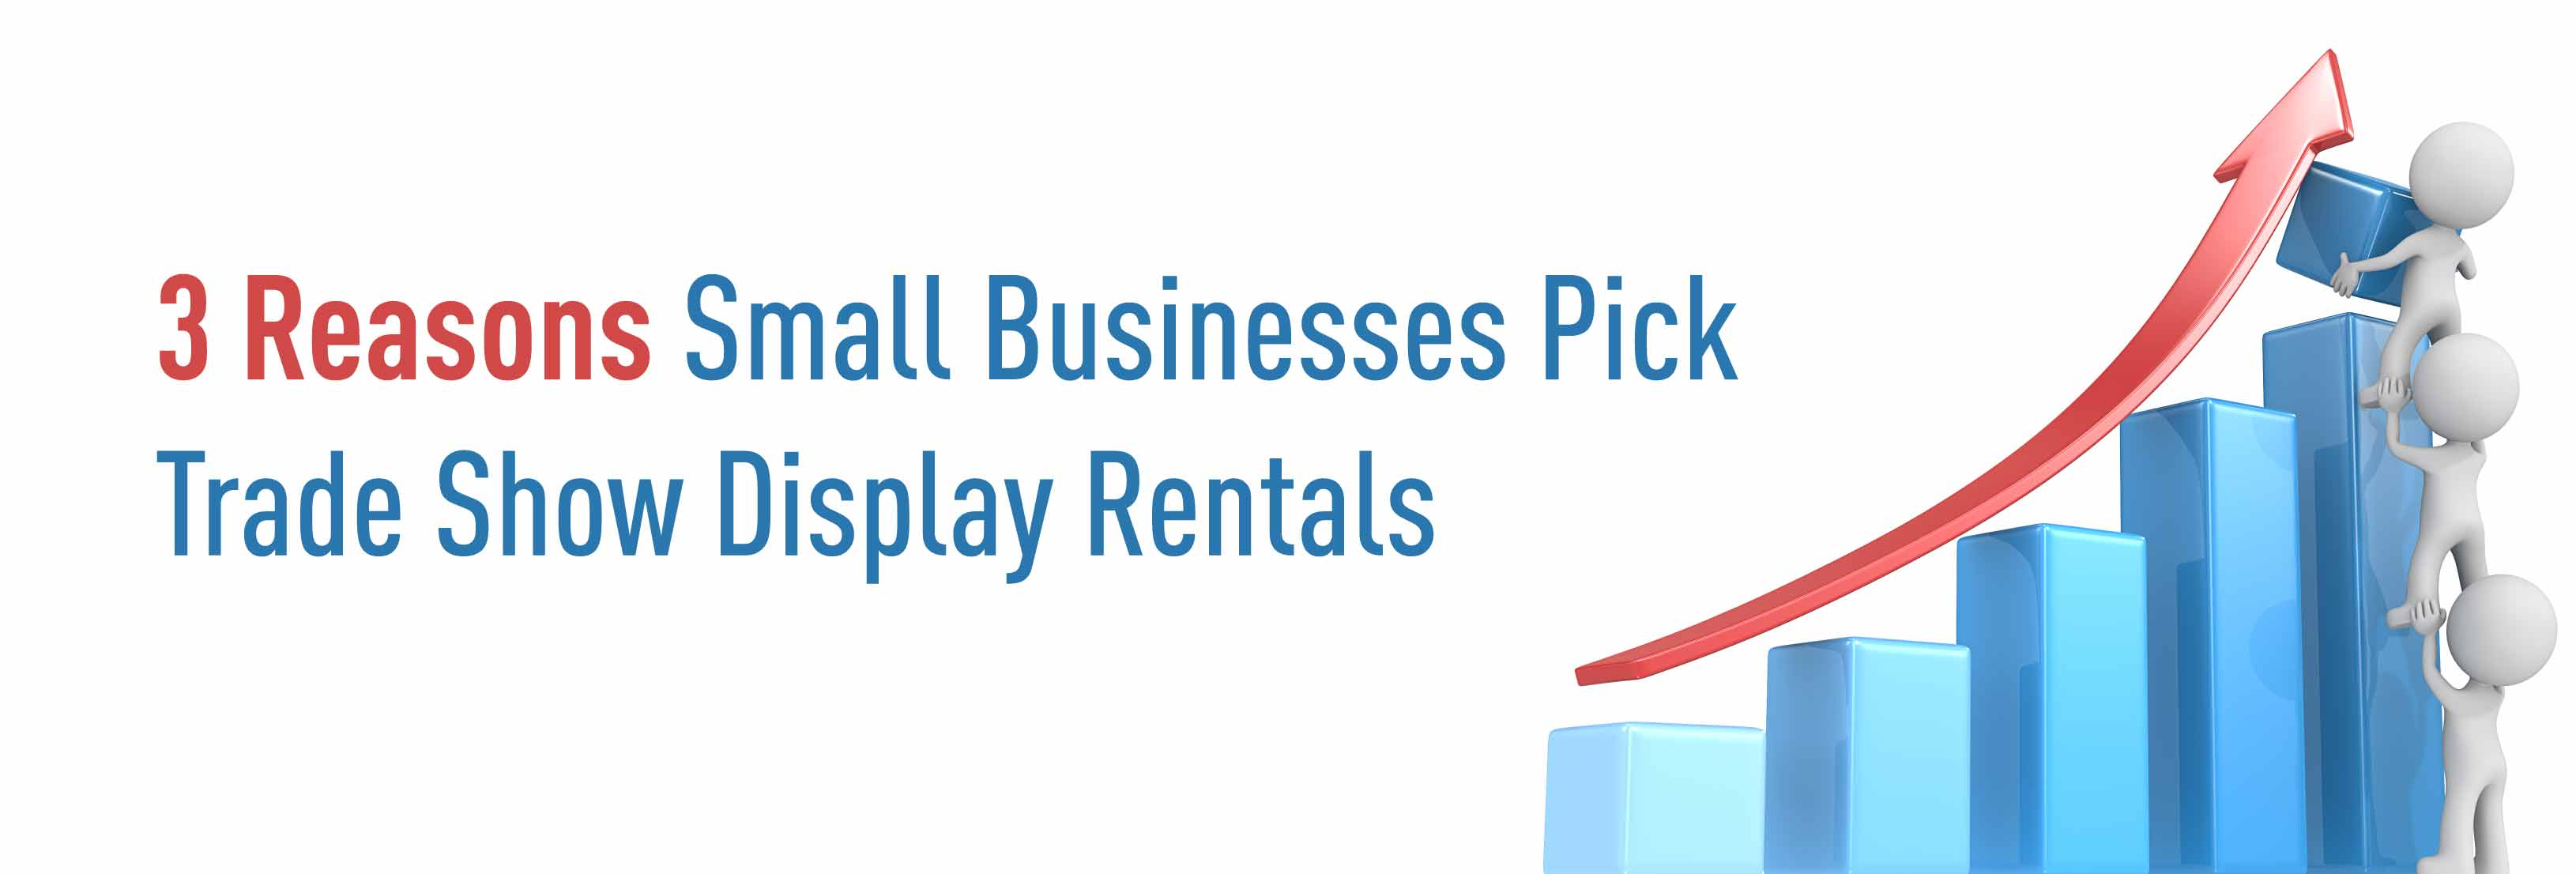 3-Reasons-Small-Businesses-Pick-Trade-Show-Display-Rentals